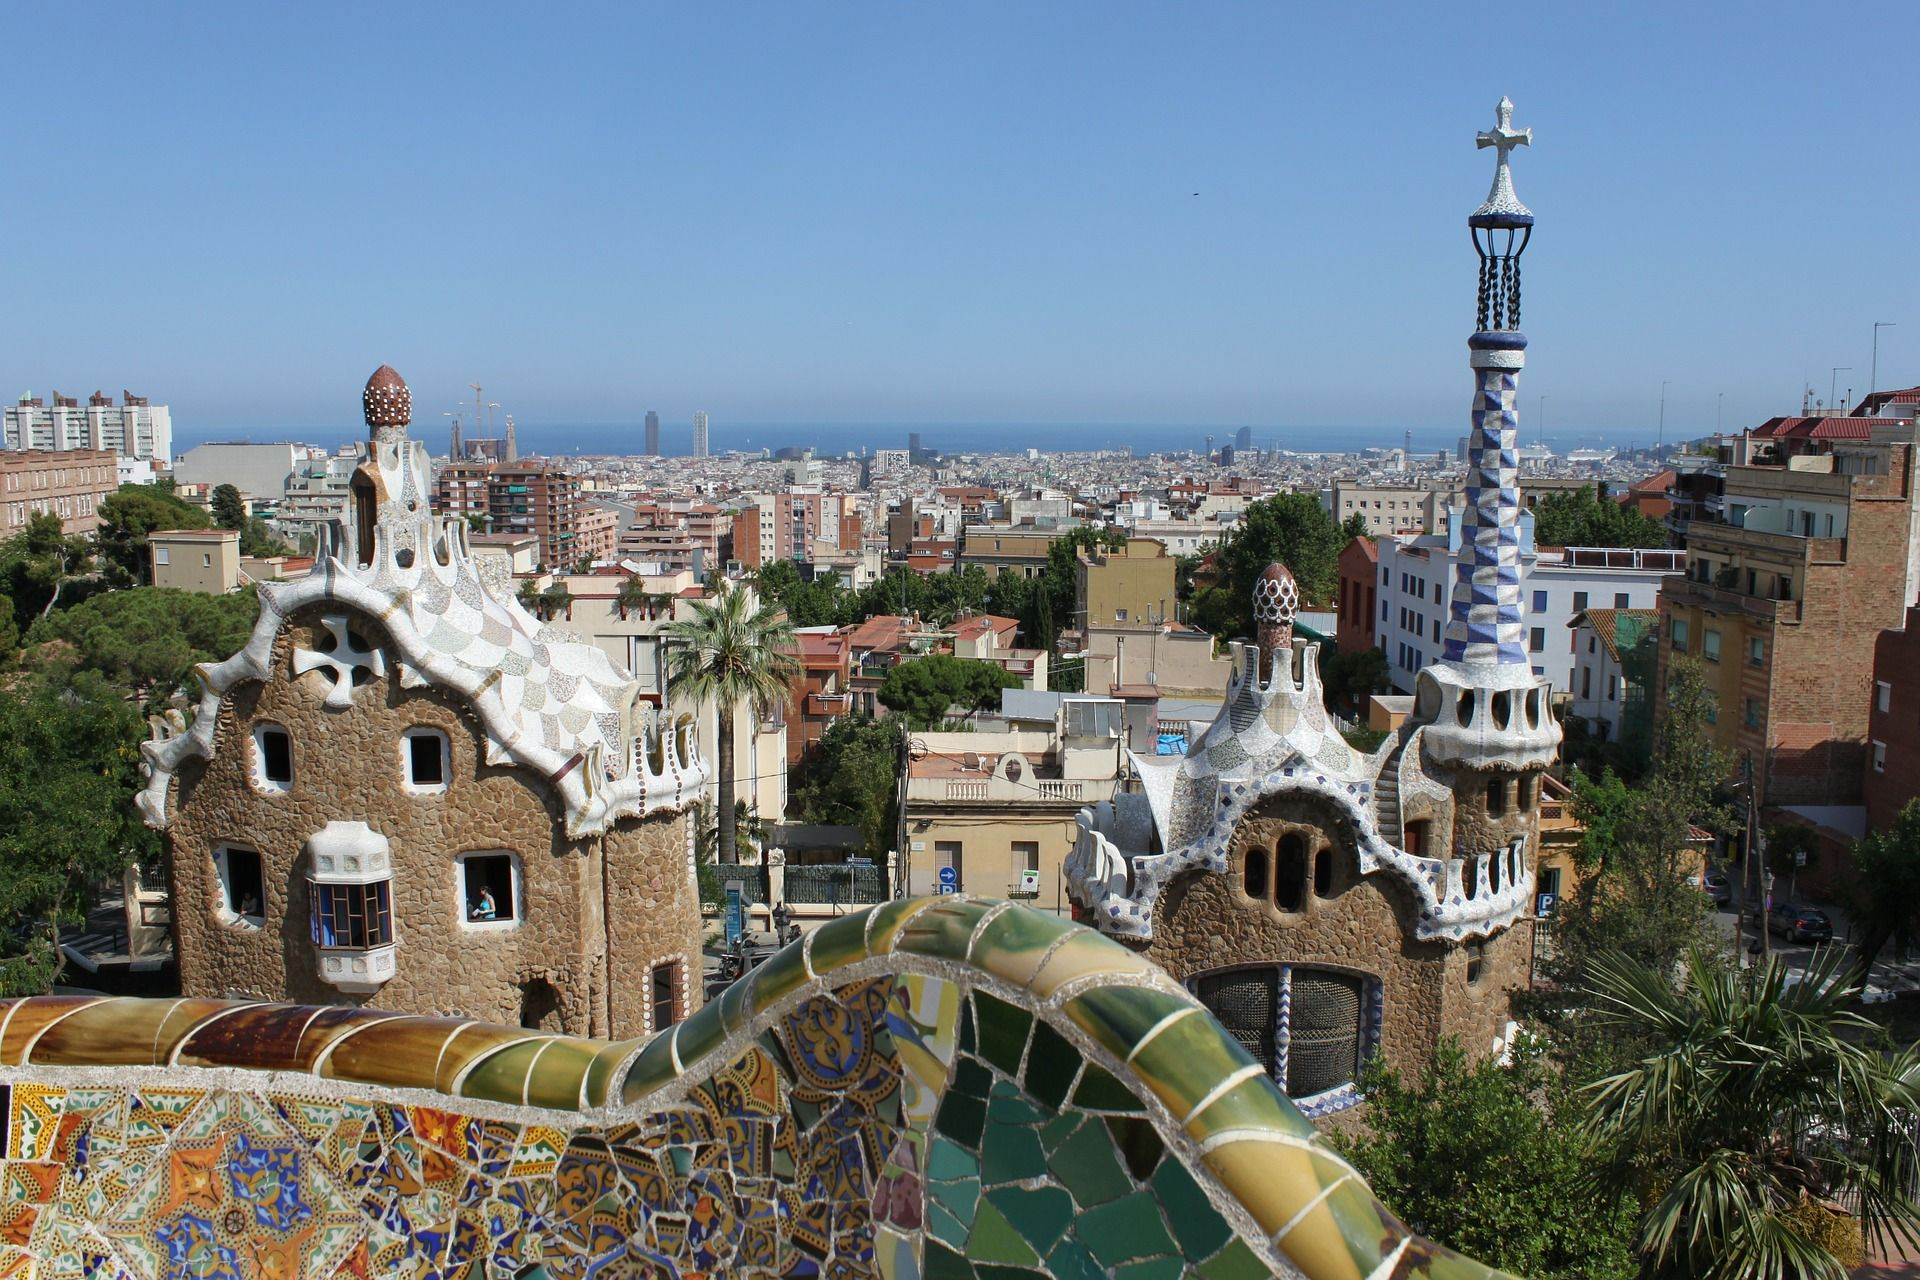 parc-guell-332390_1920 pixabay free